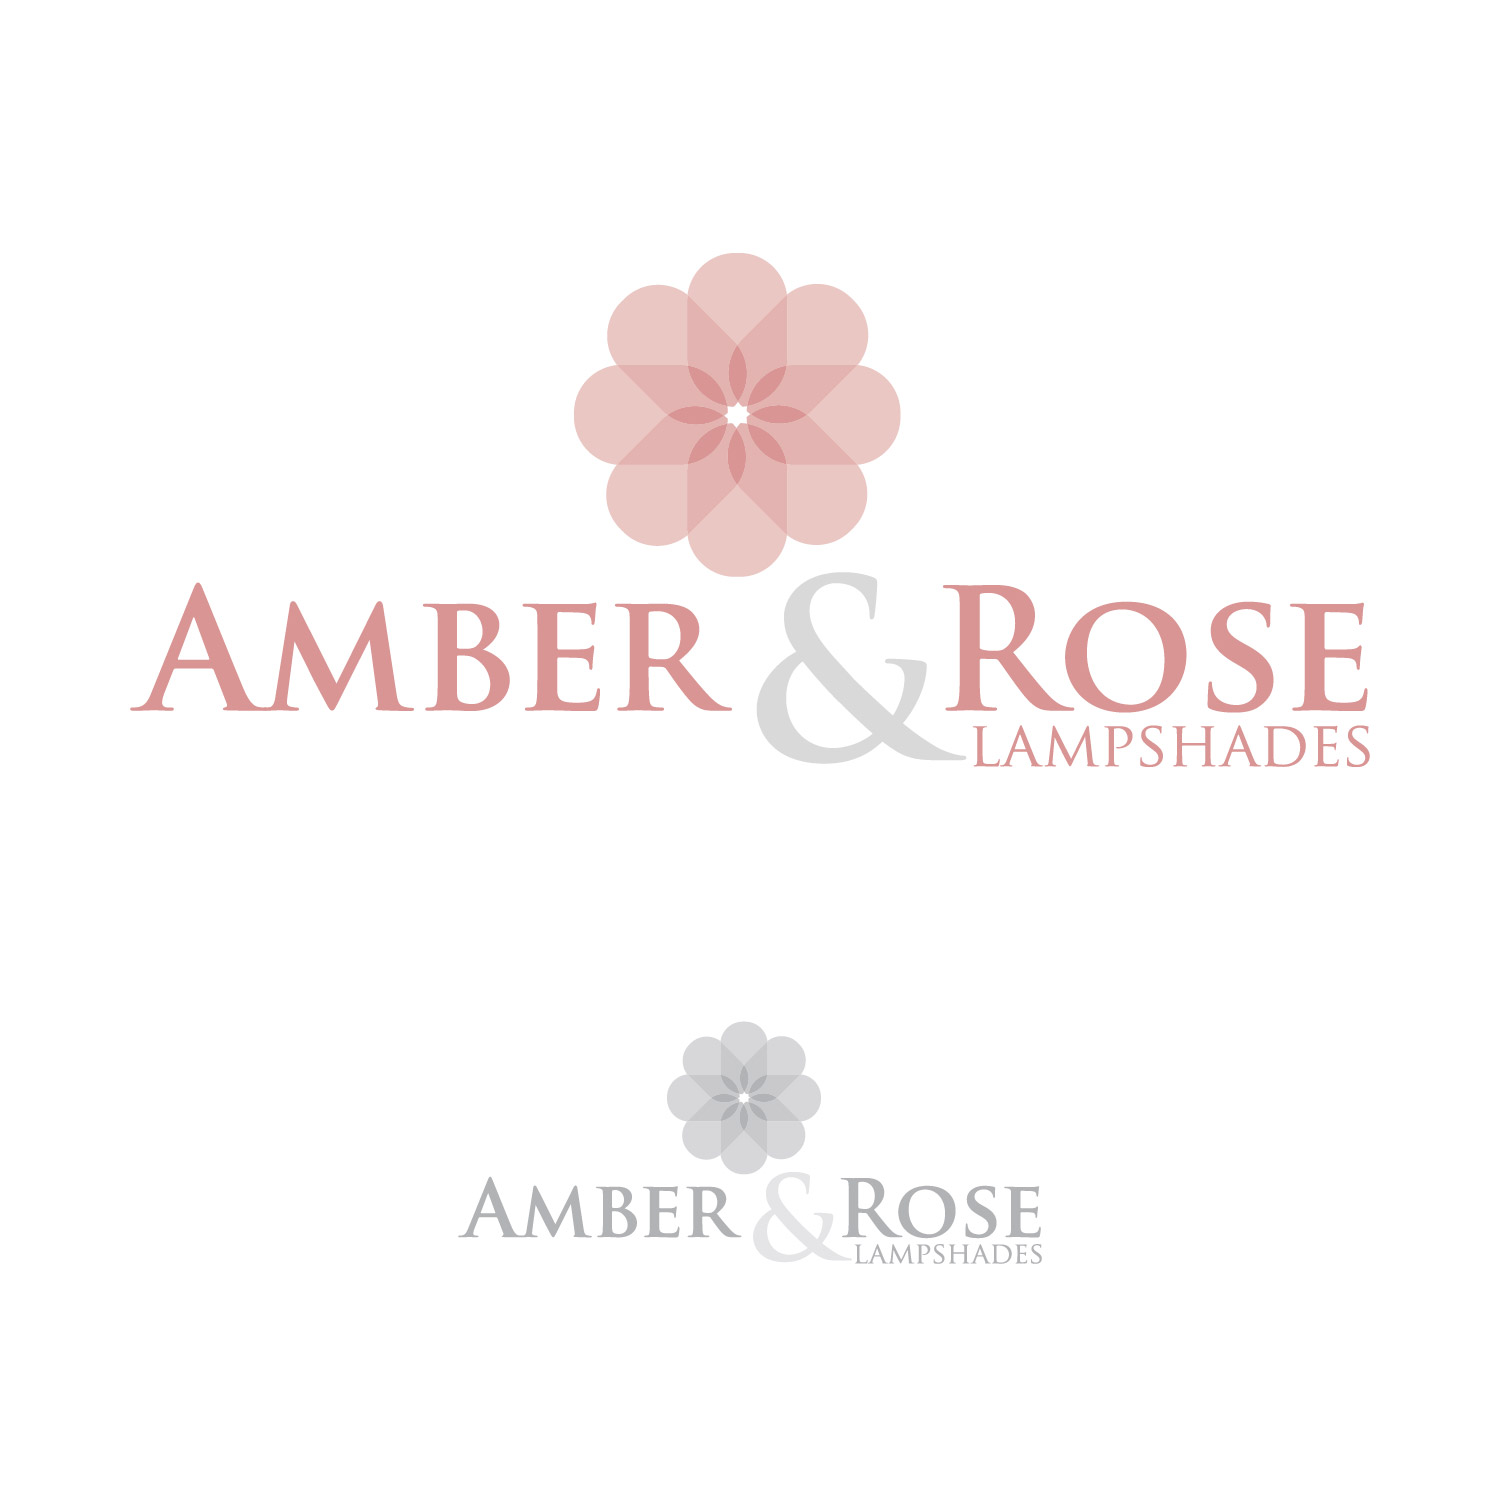 Logo Design by lagalag - Entry No. 5 in the Logo Design Contest Creative Logo Design for Amber & Rose.